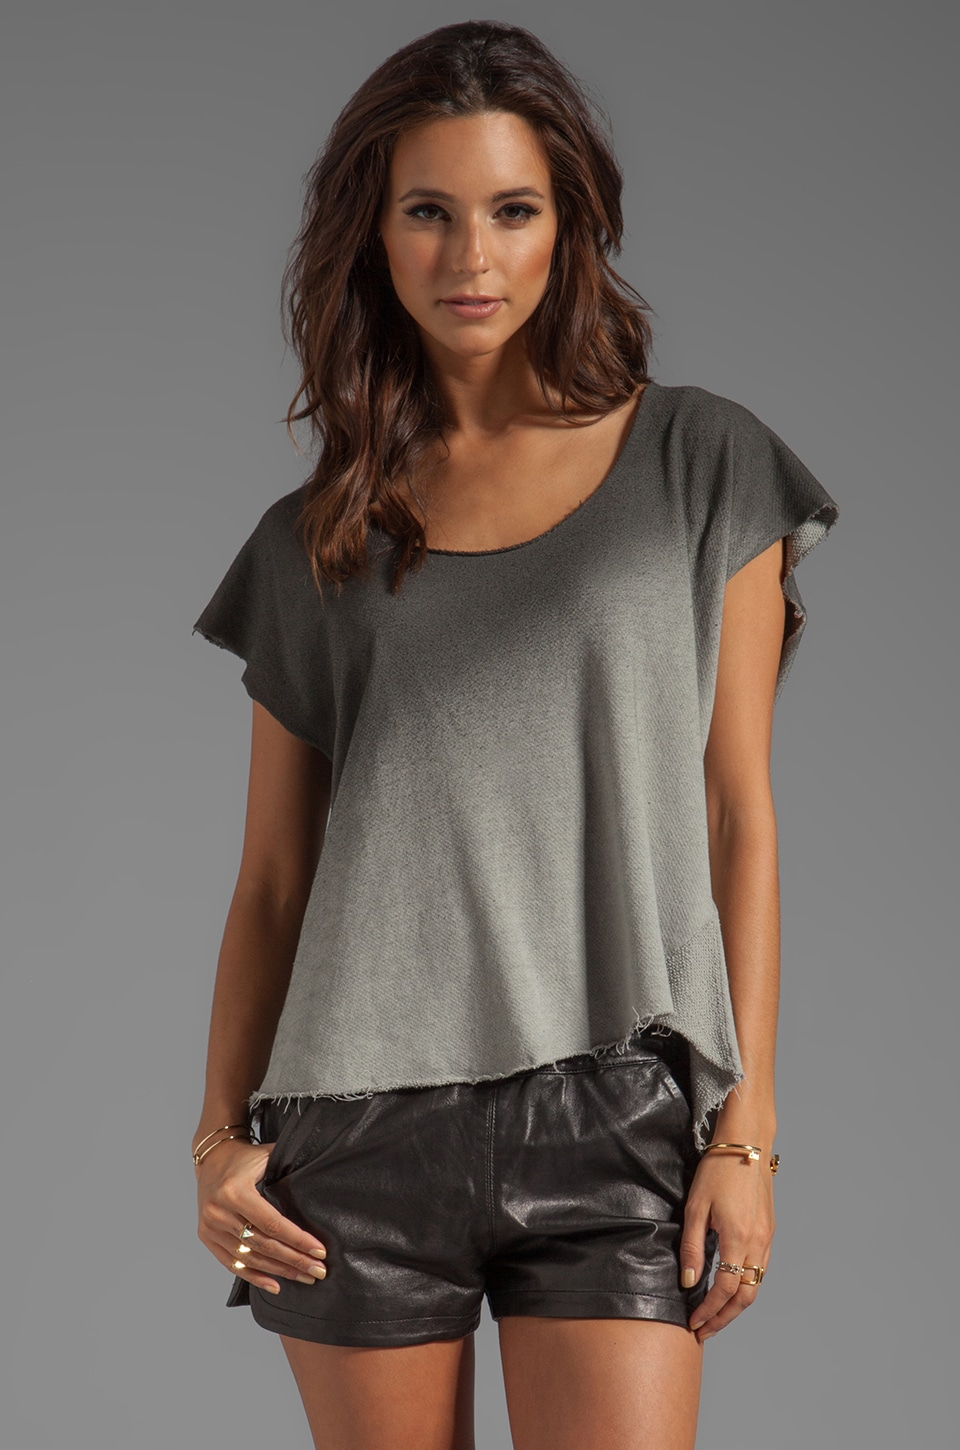 My Line Vivienne Ombre Tee in Black Spray